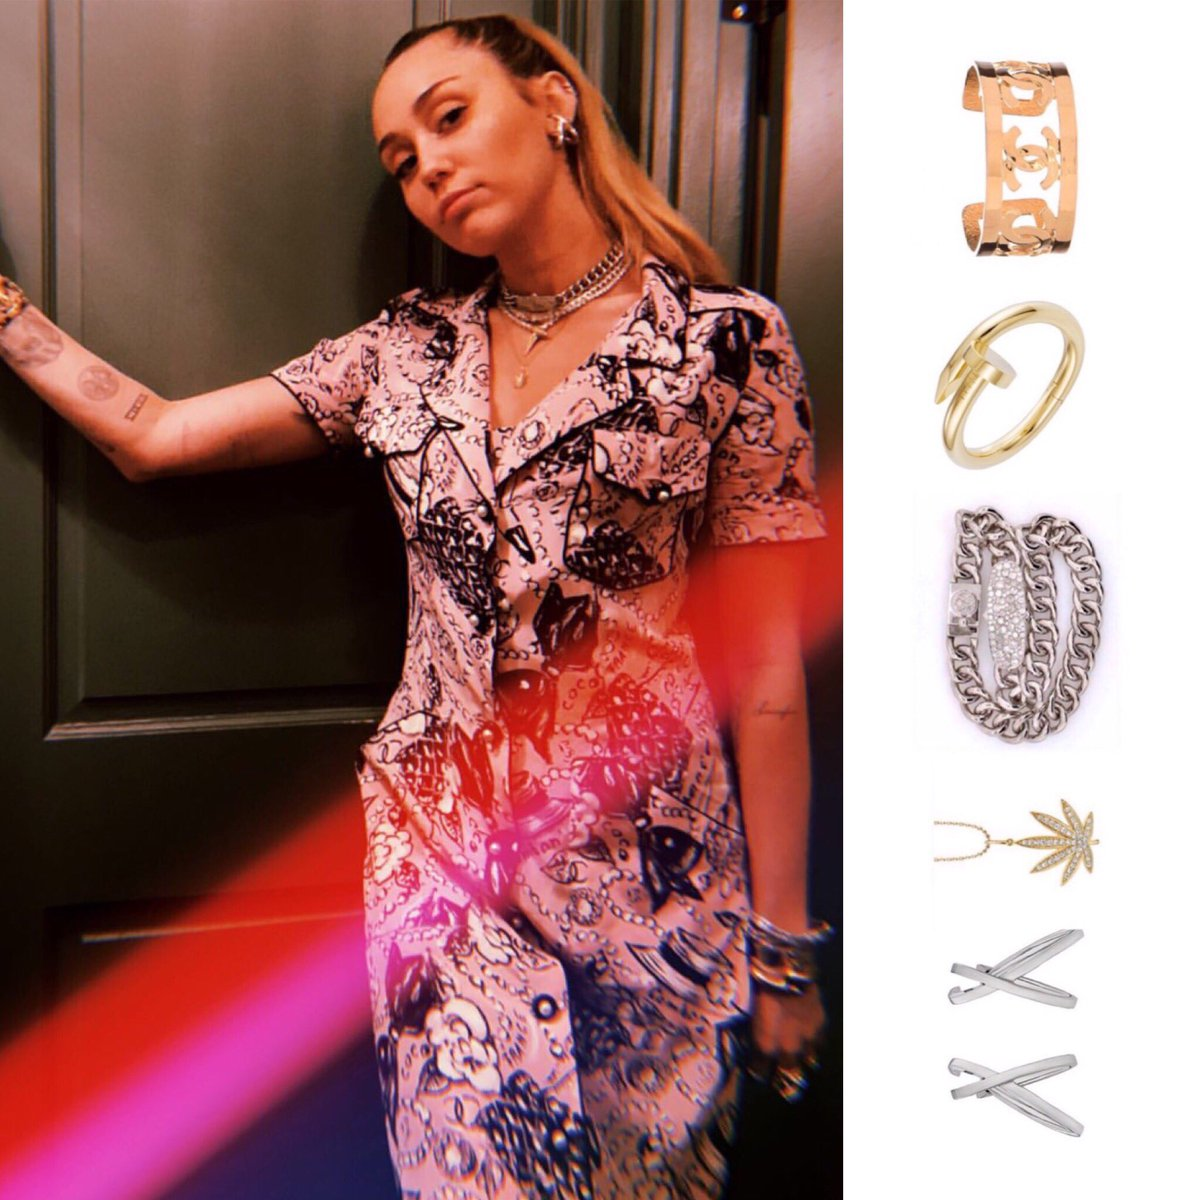 Miley Cyrus Fashion On Twitter Mileycyrus Has The Best Taste In Jewelry These Are Some Of The Pieces That She Has Been Wearing A Lot Recently Chanel Cc Logo Cuff